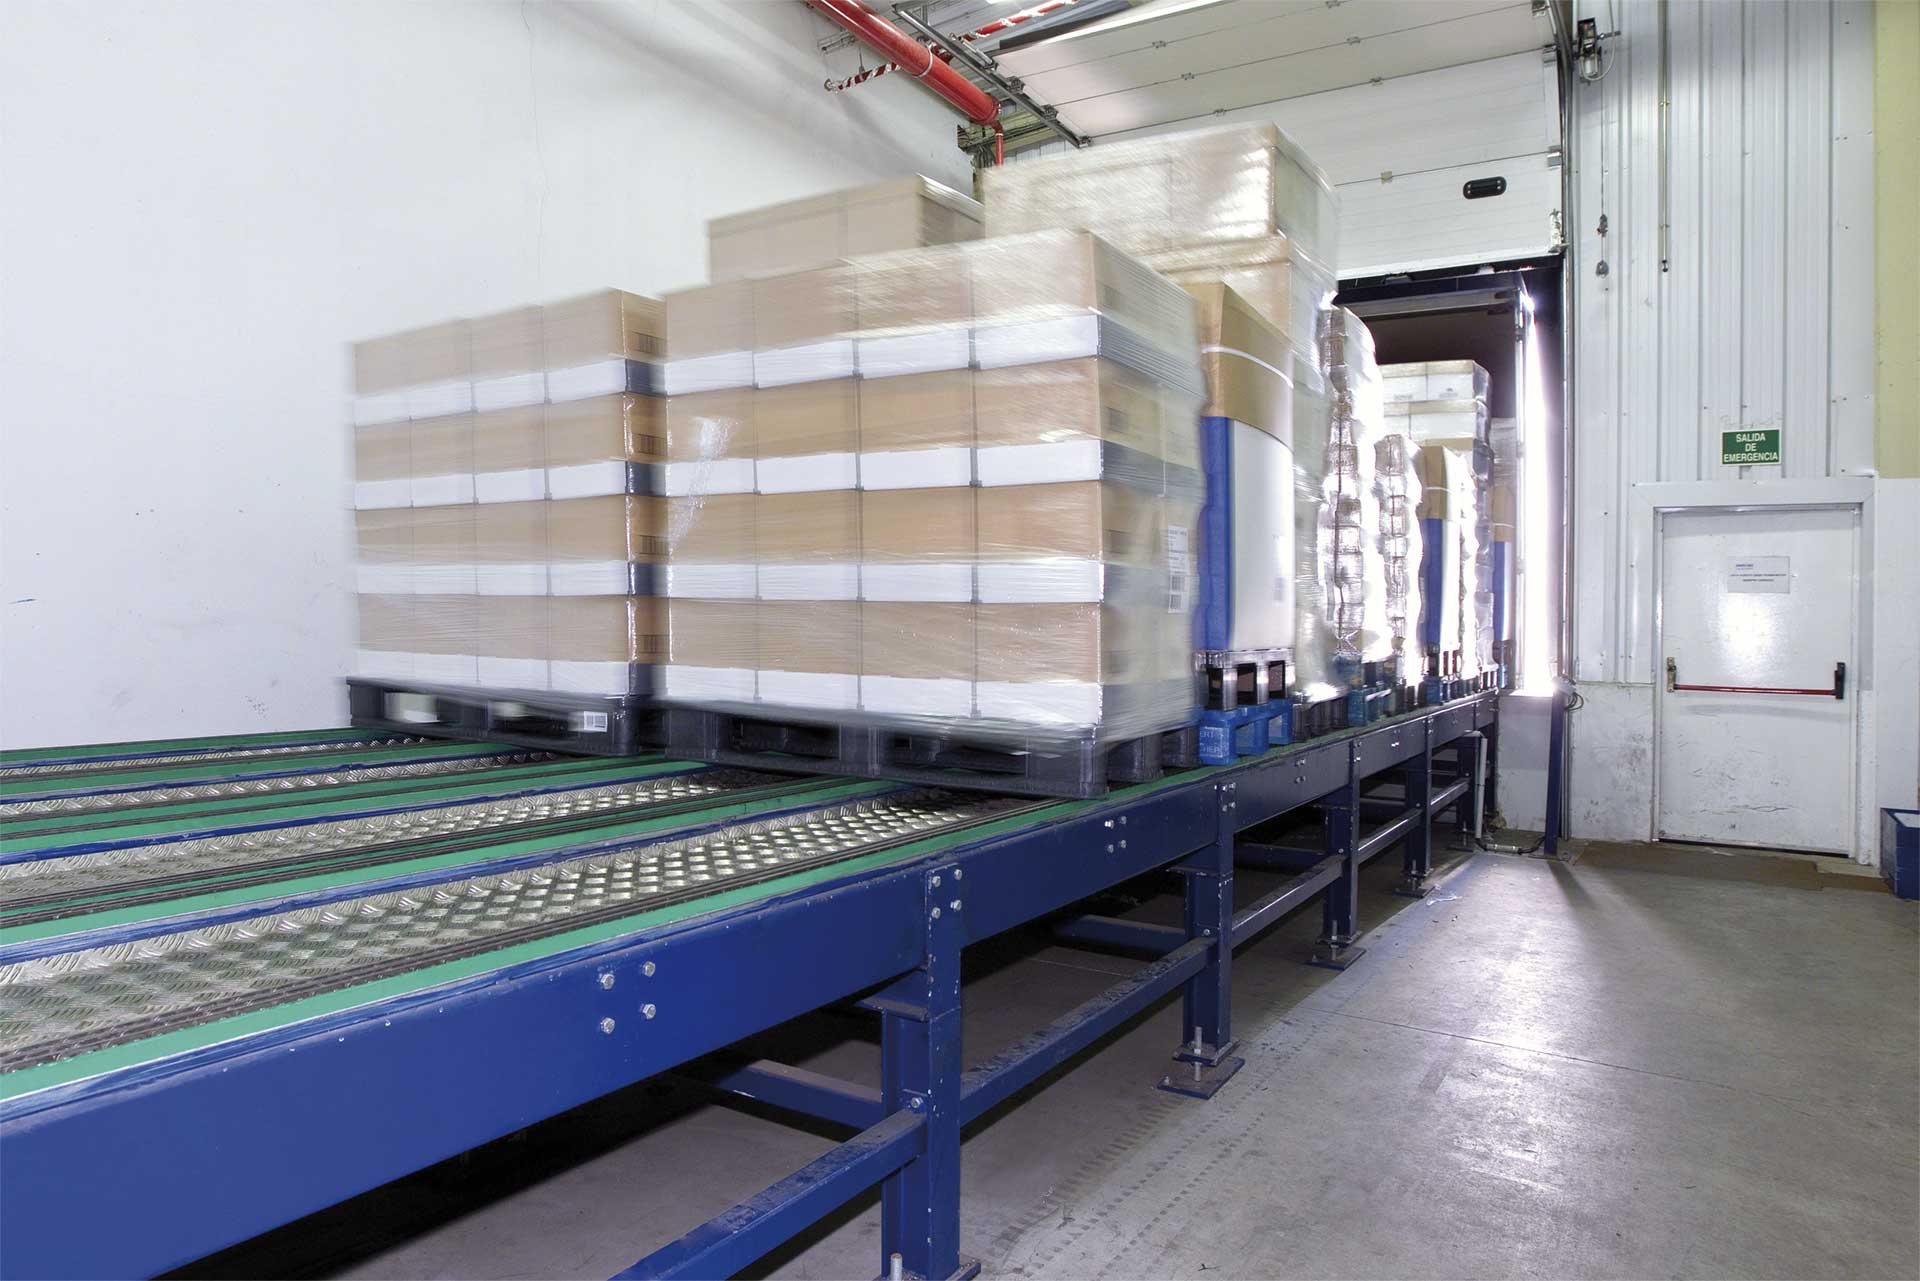 Automatic truck loading and unloading systems bring agility and safety to the warehouse docking area